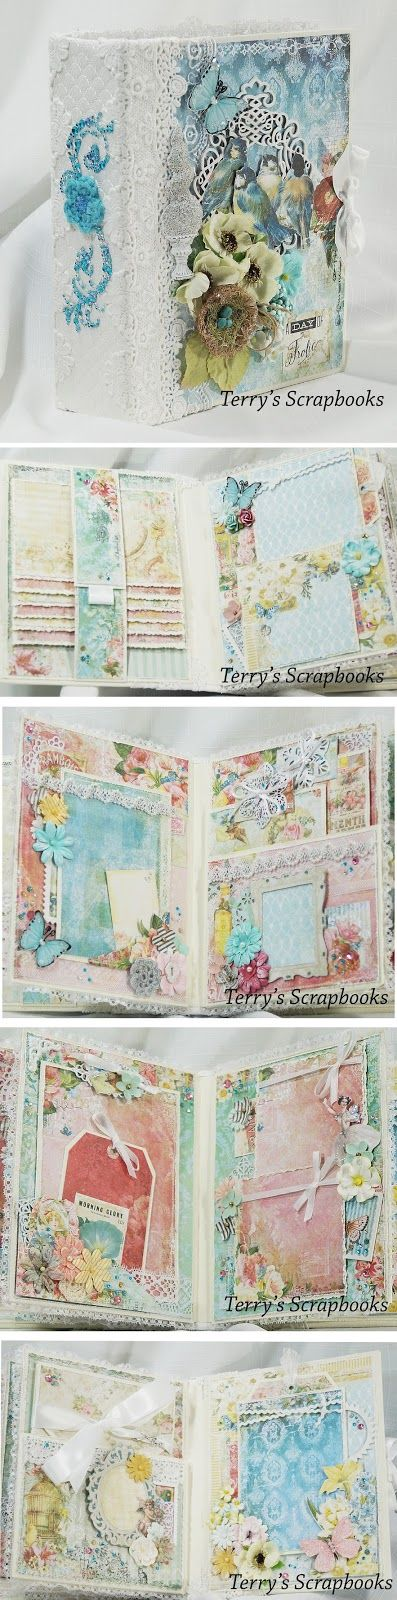 Terry's Scrapbooks: Blue Fern Frolic Mini Album Reneabouquets design team project project